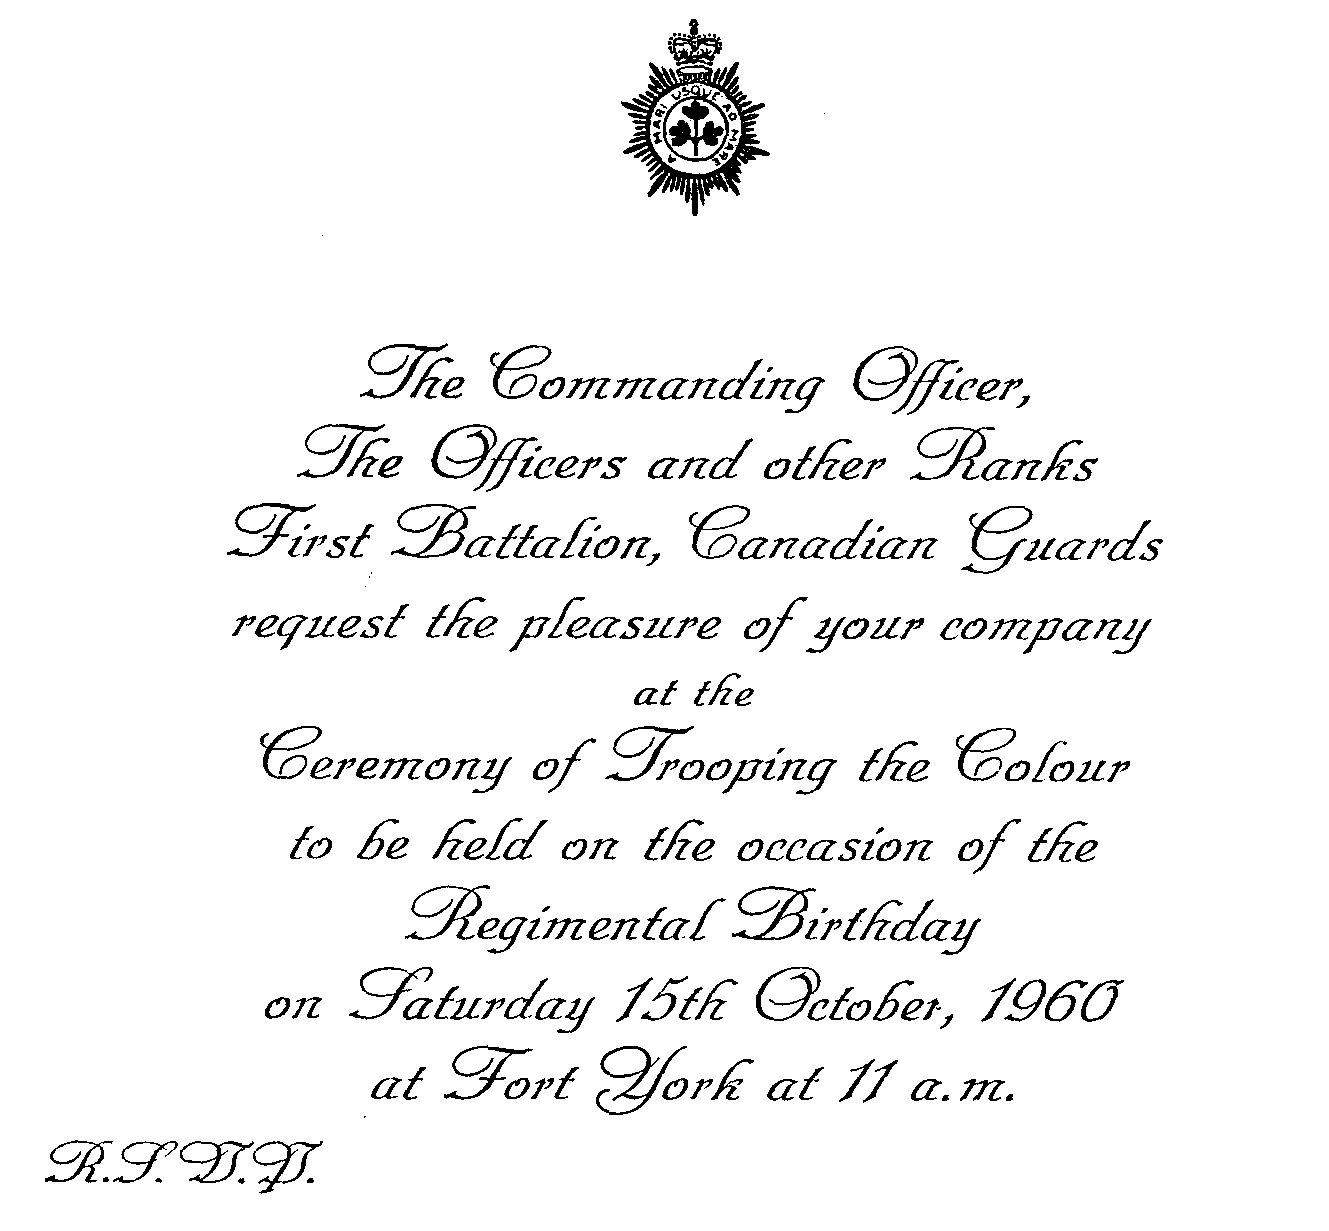 43_Cdn Gds-Trooping Colour on 15 Oct 1960-Invitation